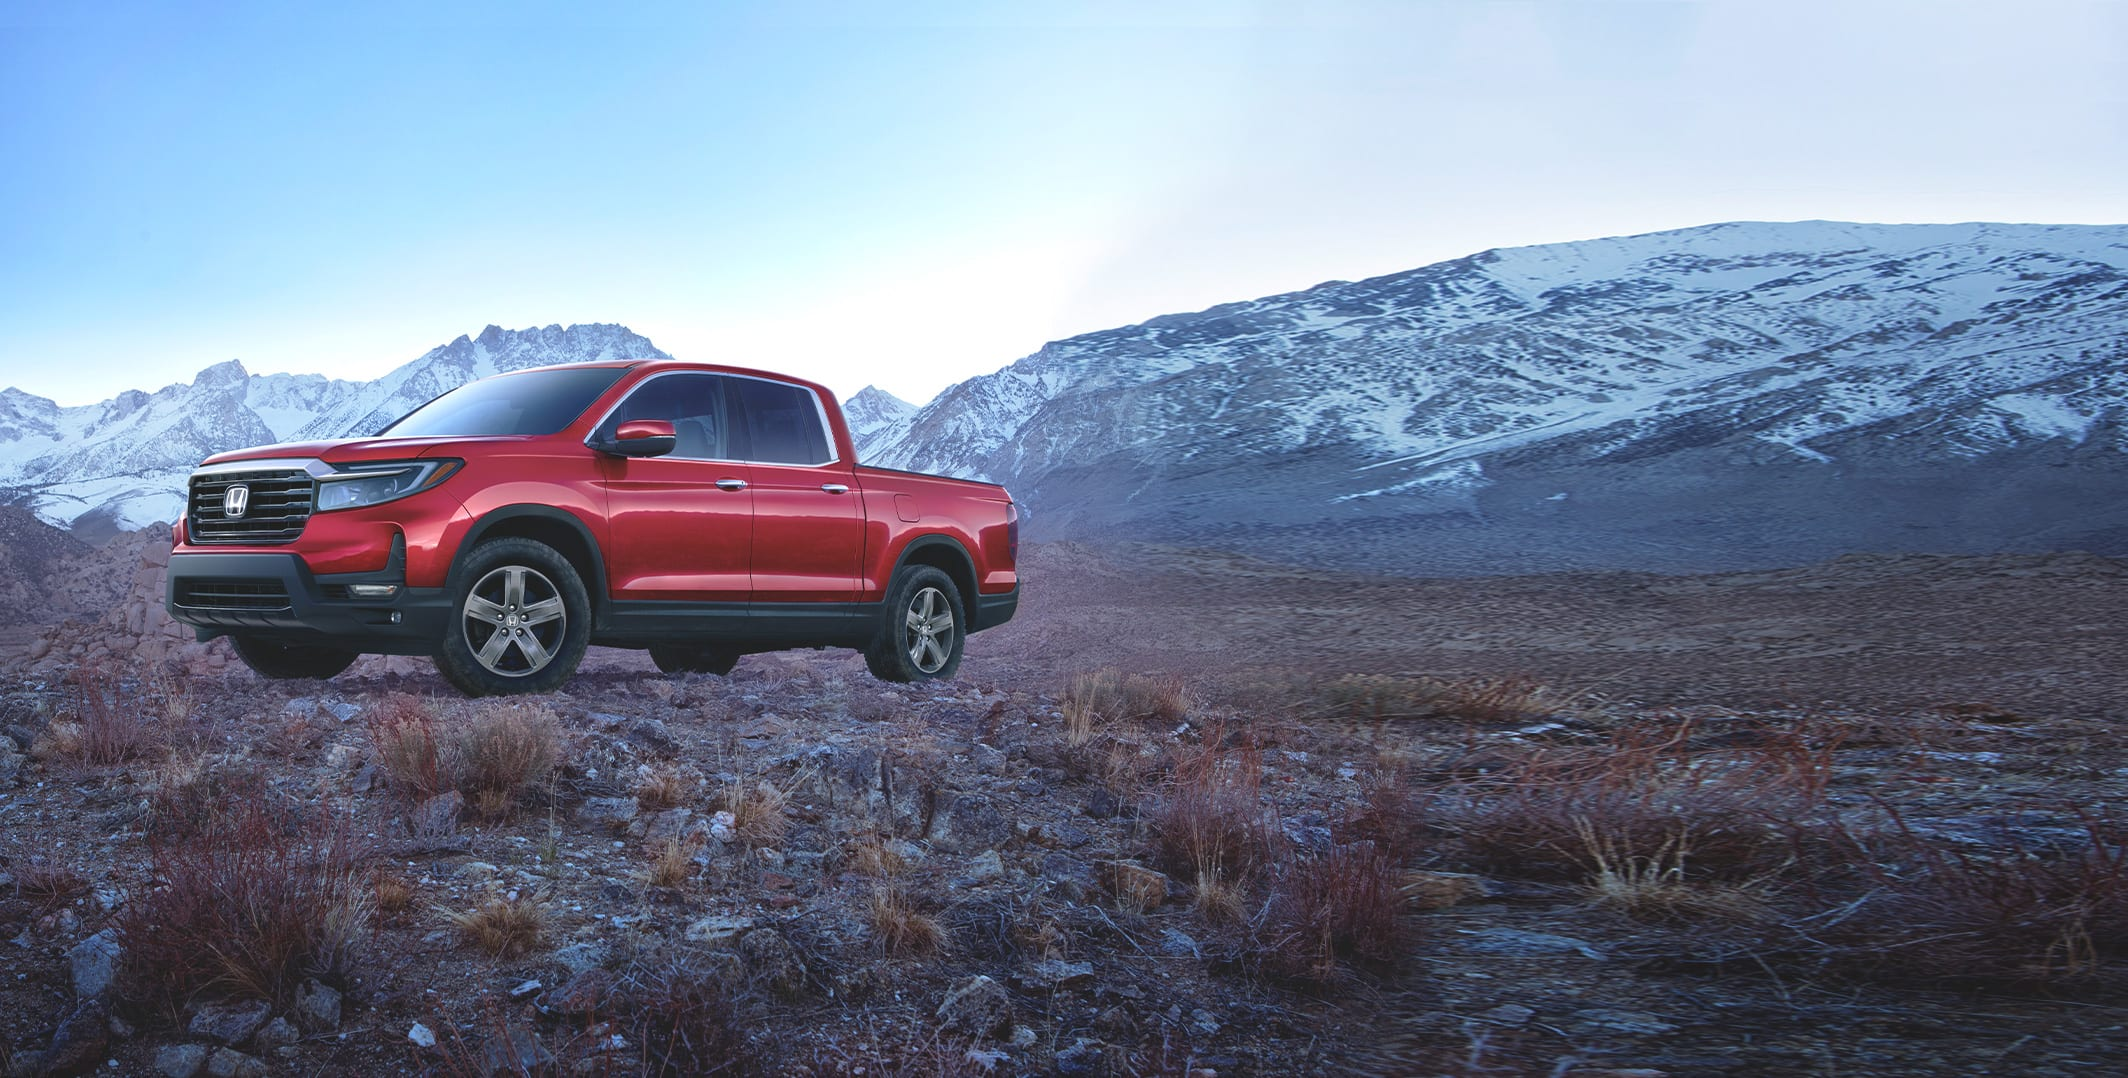 Driver-side view of the 2021 Honda Ridgeline RTL-E in Radiant Red Metallic II shown parked in a rugged, mountainous landscape.